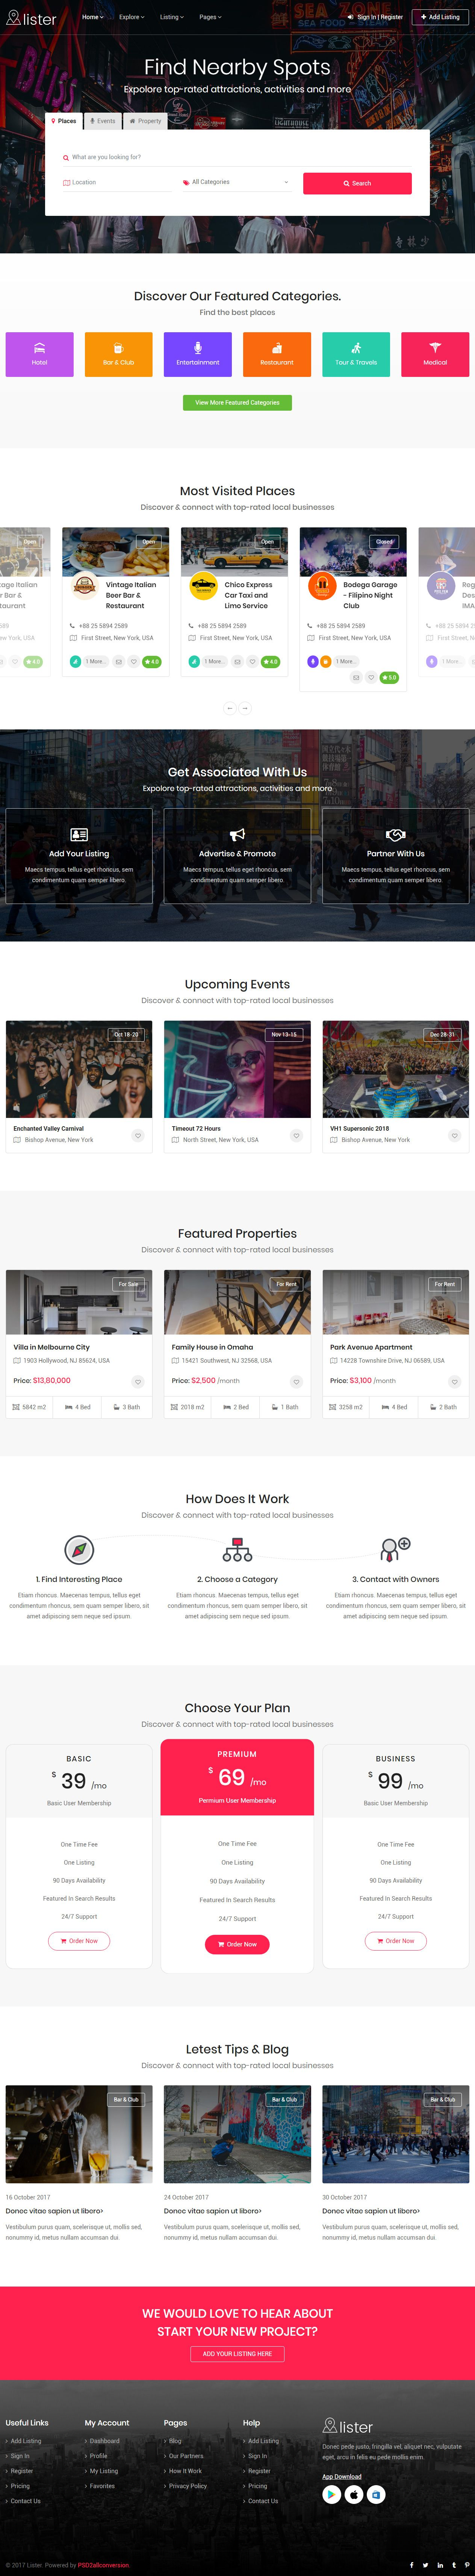 Lister Is Premiumhtml5template Bootstrap 4 Framework Responsive Design If You Like This Listing Template Web App Design Website Design Layout Web Design